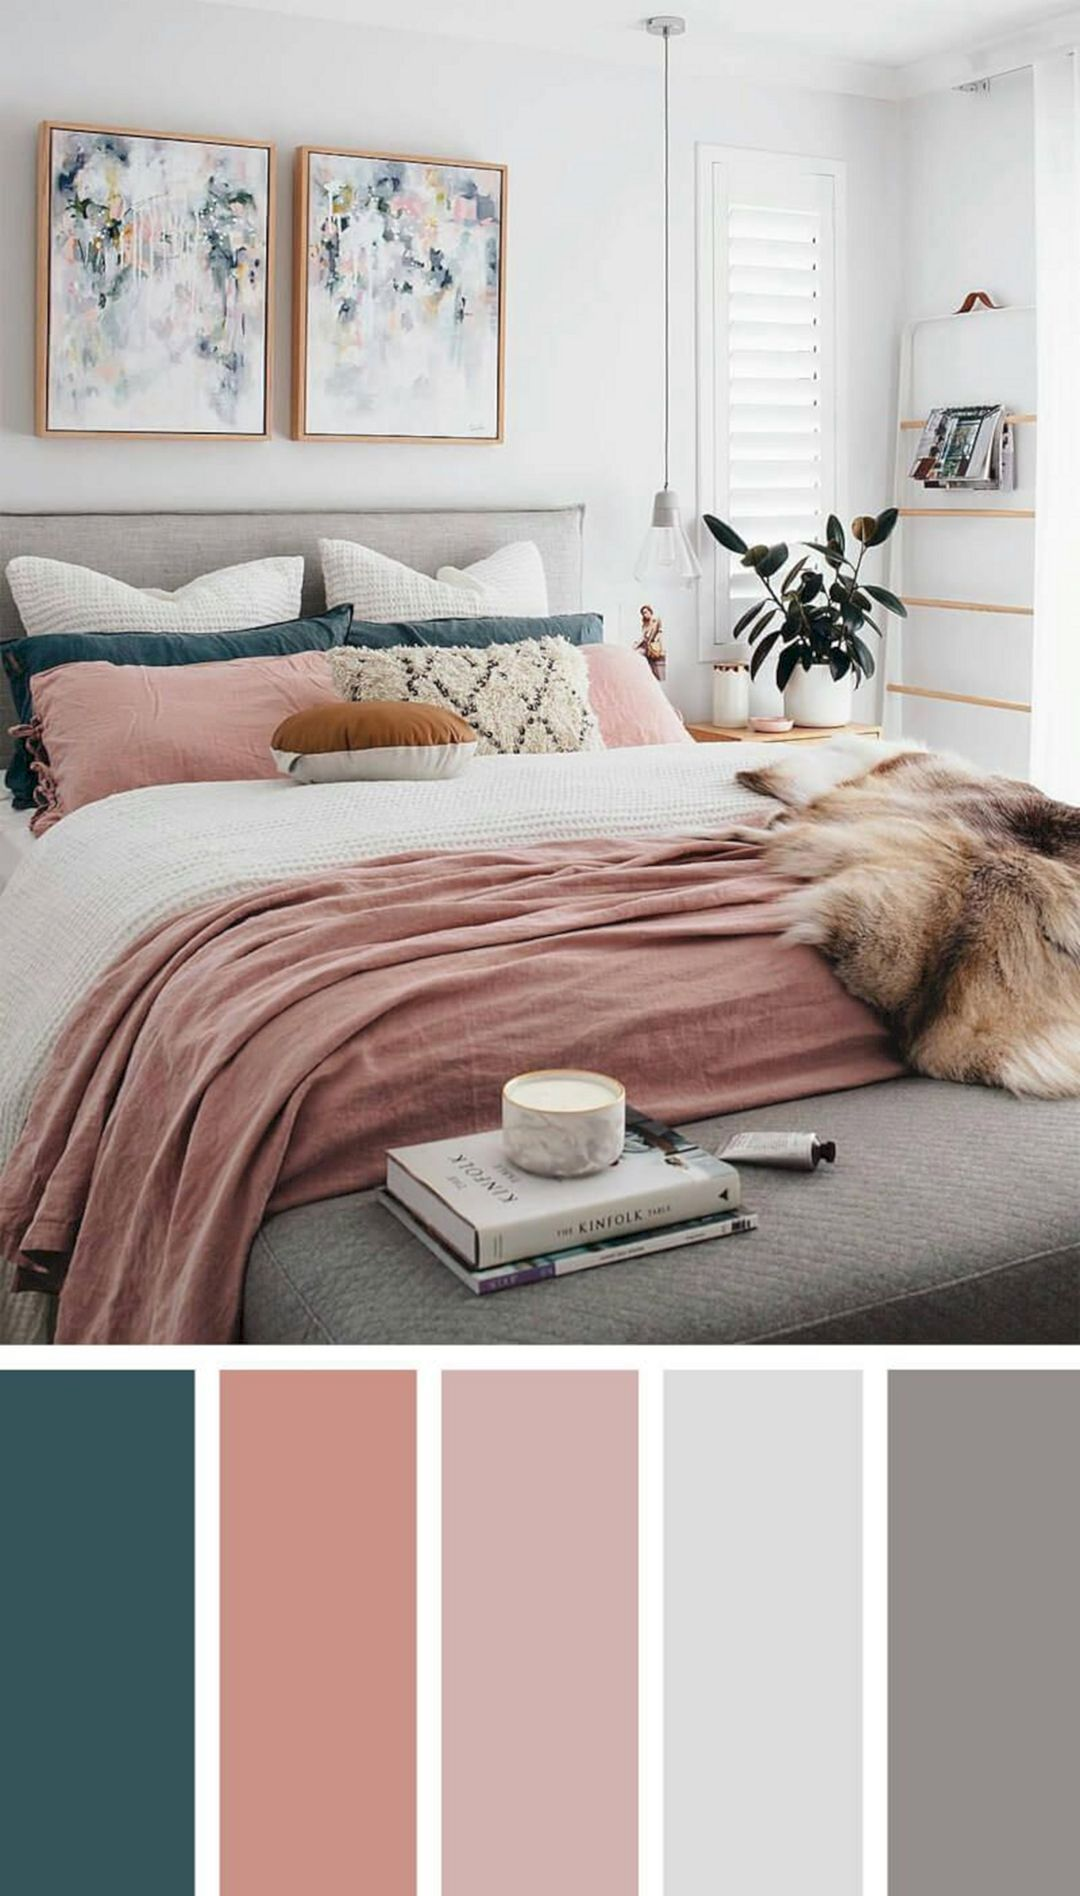 25+ Chic Home Color Schemes And Decorations To Get An Pretty Interior is part of Chic Home Color Schemes And Decorations To Get An Pretty - Choosing a beautiful color scheme for the interior will make the home look more comfortable to live in because the colors will represent what you like and how you really are  Or you can also get ar…